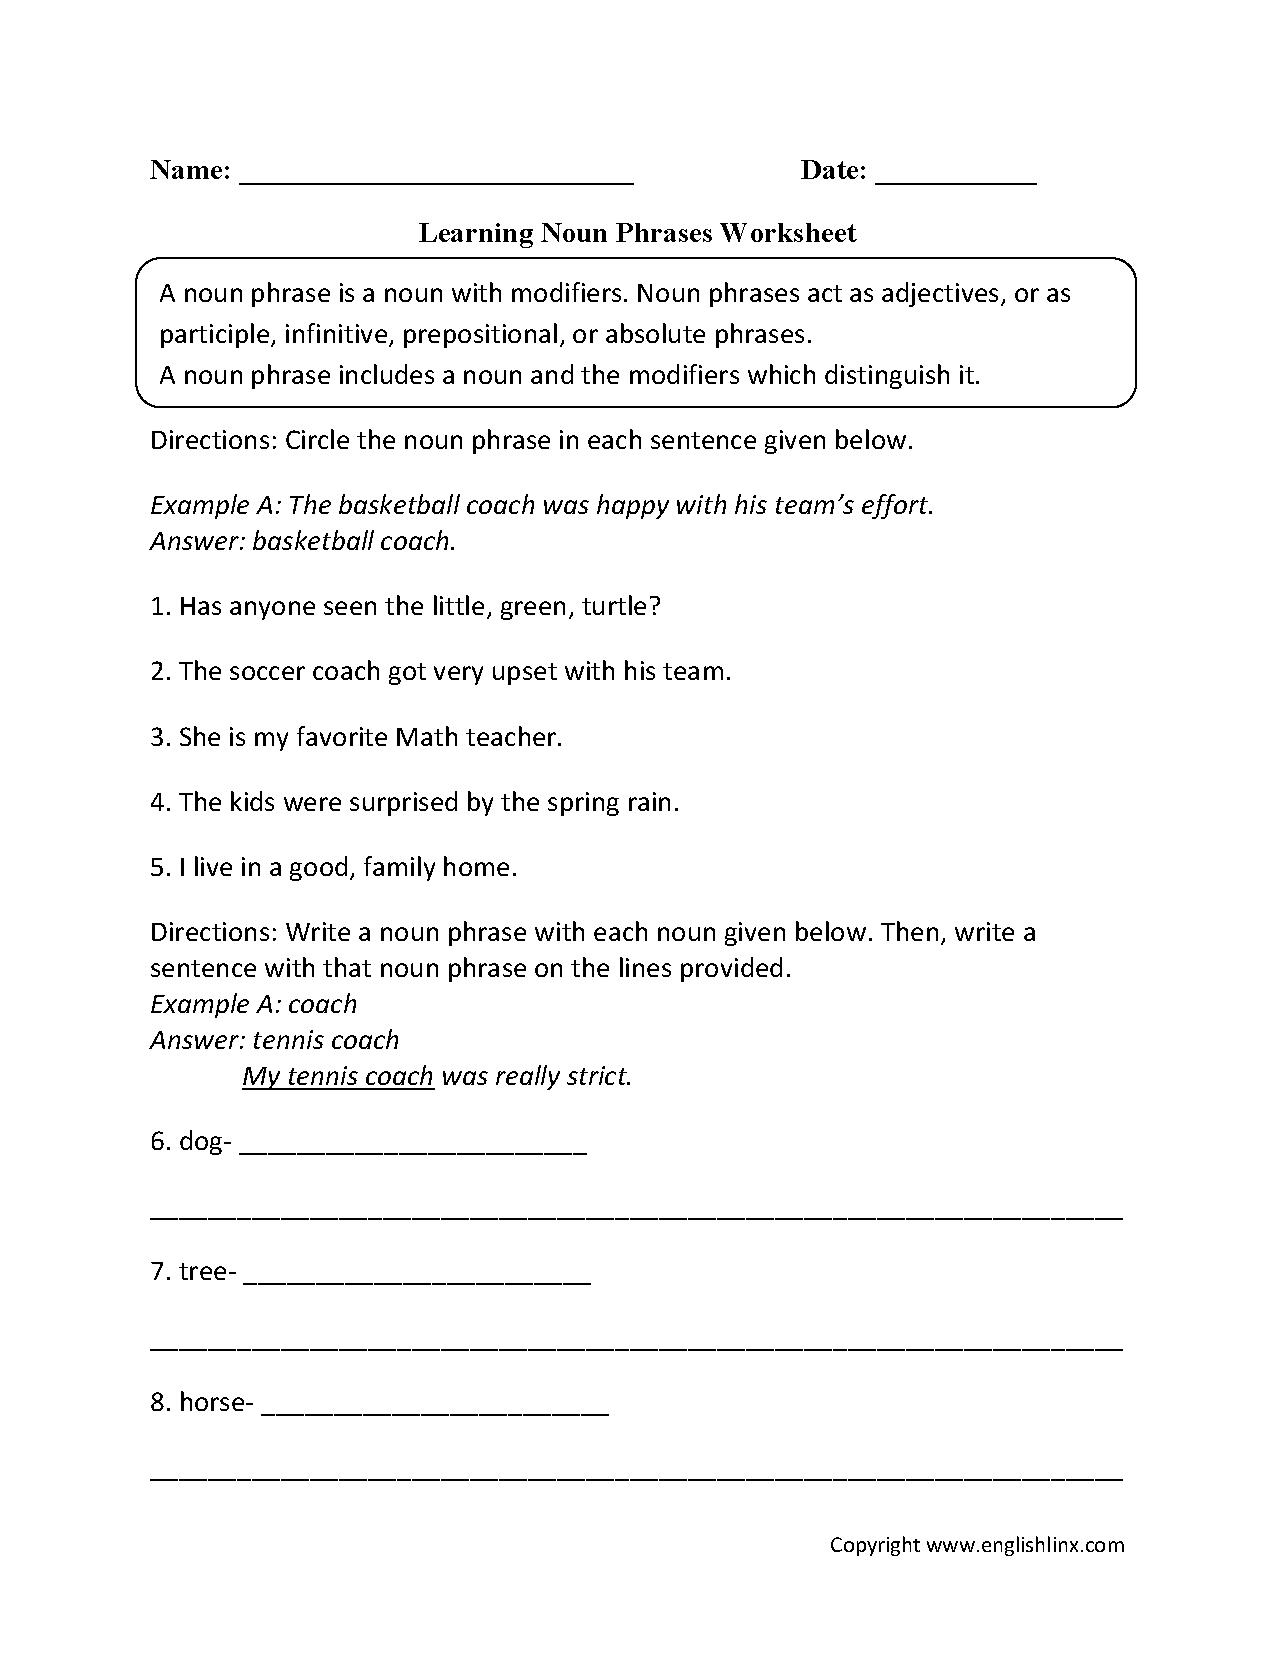 worksheet Noun Worksheets 4th Grade nouns worksheets noun phrases worksheets